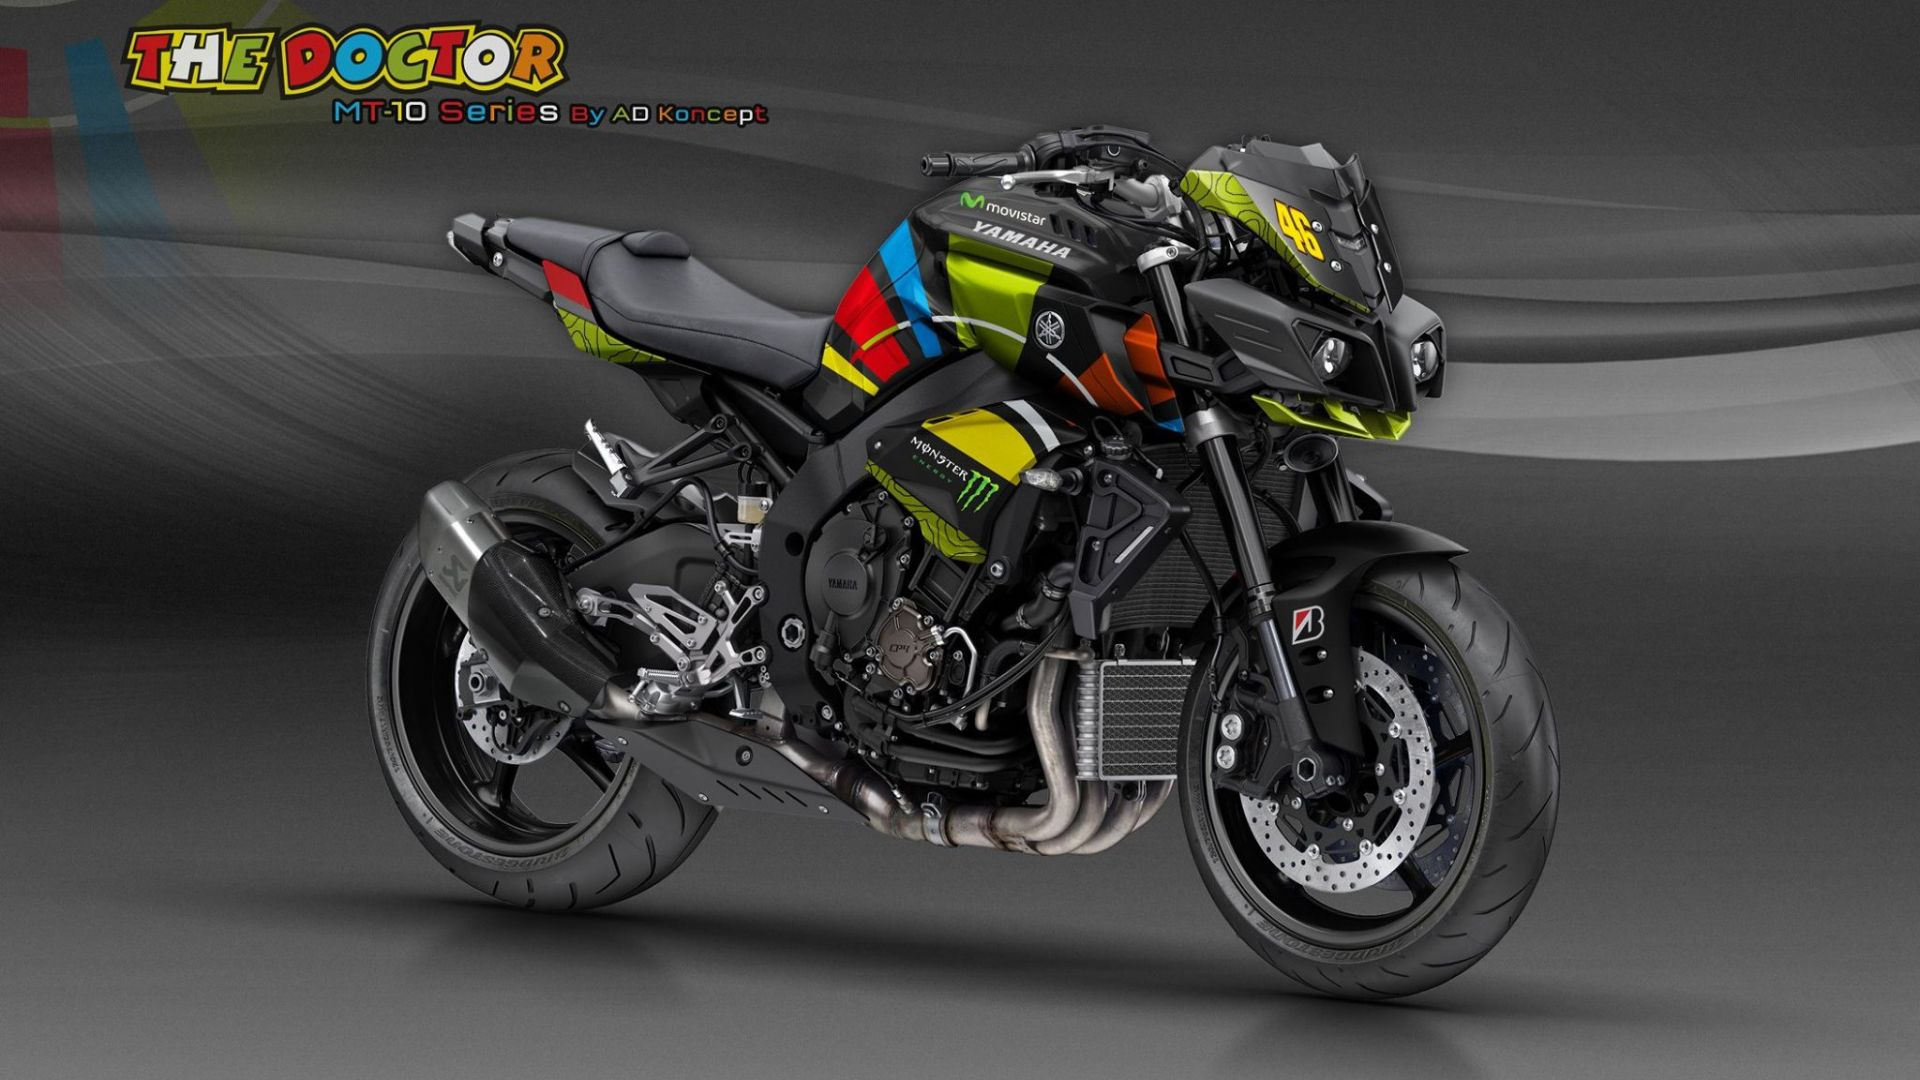 concept bike yamaha mt 10 interpretazioni di stile by ad koncept motorbox. Black Bedroom Furniture Sets. Home Design Ideas